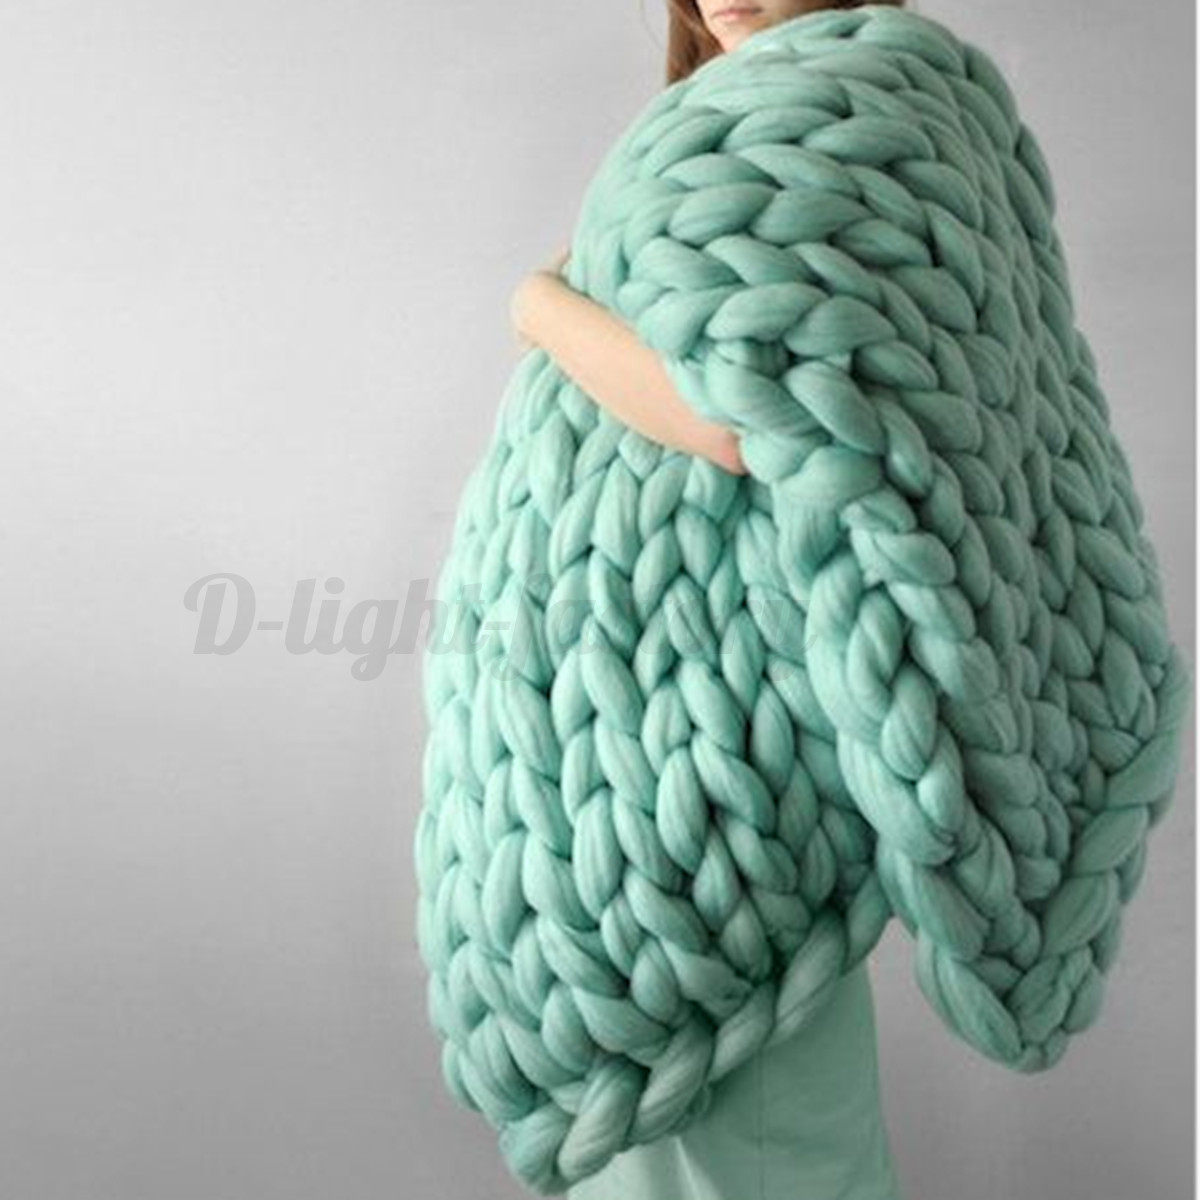 Large Soft Warm Hand Chunky Knit Blanket Thick Yarn Wool Bulky ...